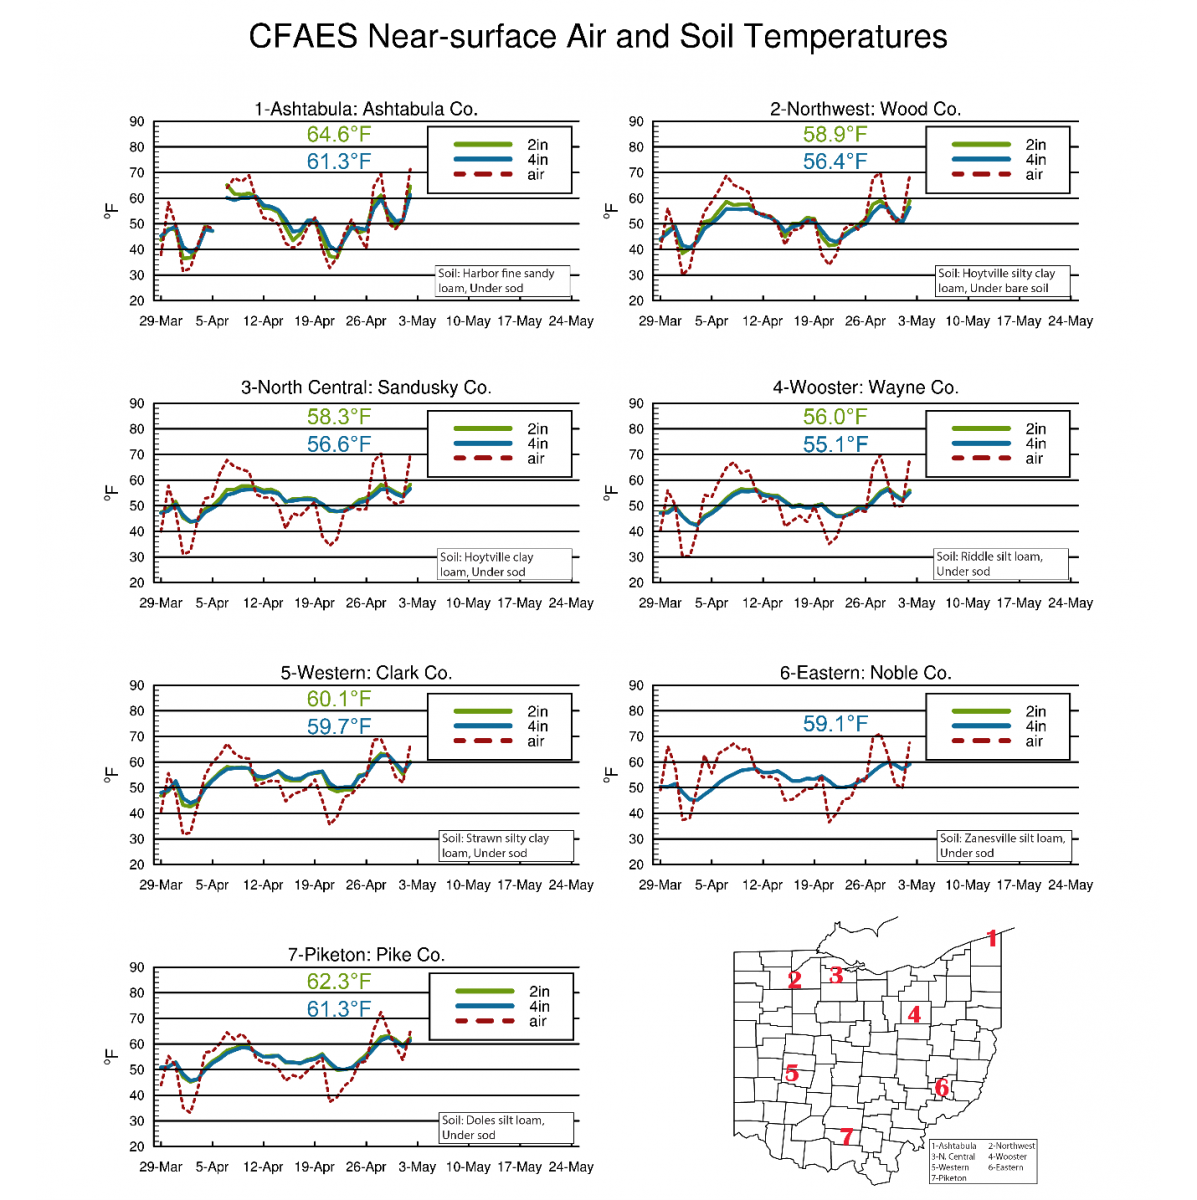 Near-surface air and soil temperatures